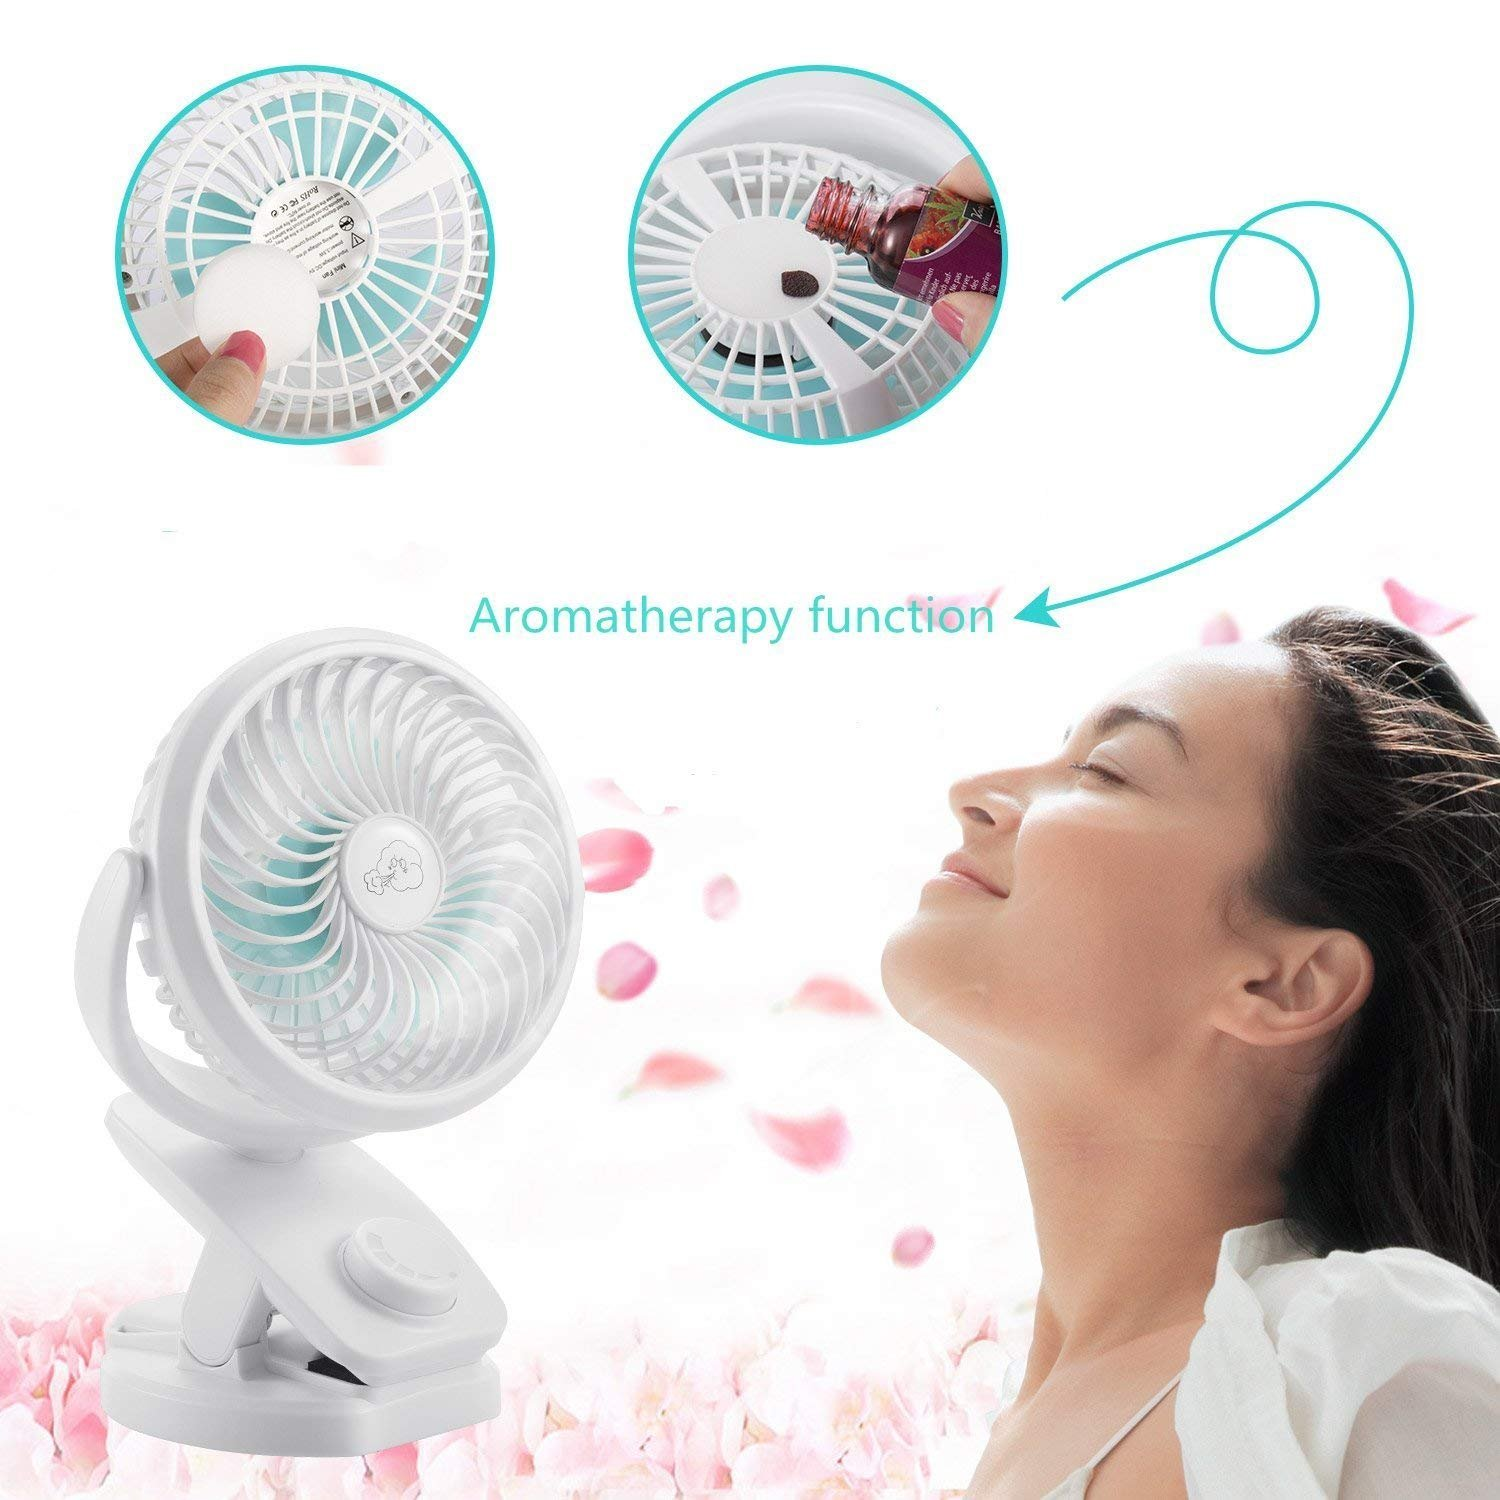 Office,Outdoor Travel Ideal for Stroller USB Desk Fan with Rechargeable 4400 mAh Battery,Mini Clip on Fan with Powerbank /&Aroma Diffuser Function,Stepless Speeds Camping COMLIFE Portable Fan F150